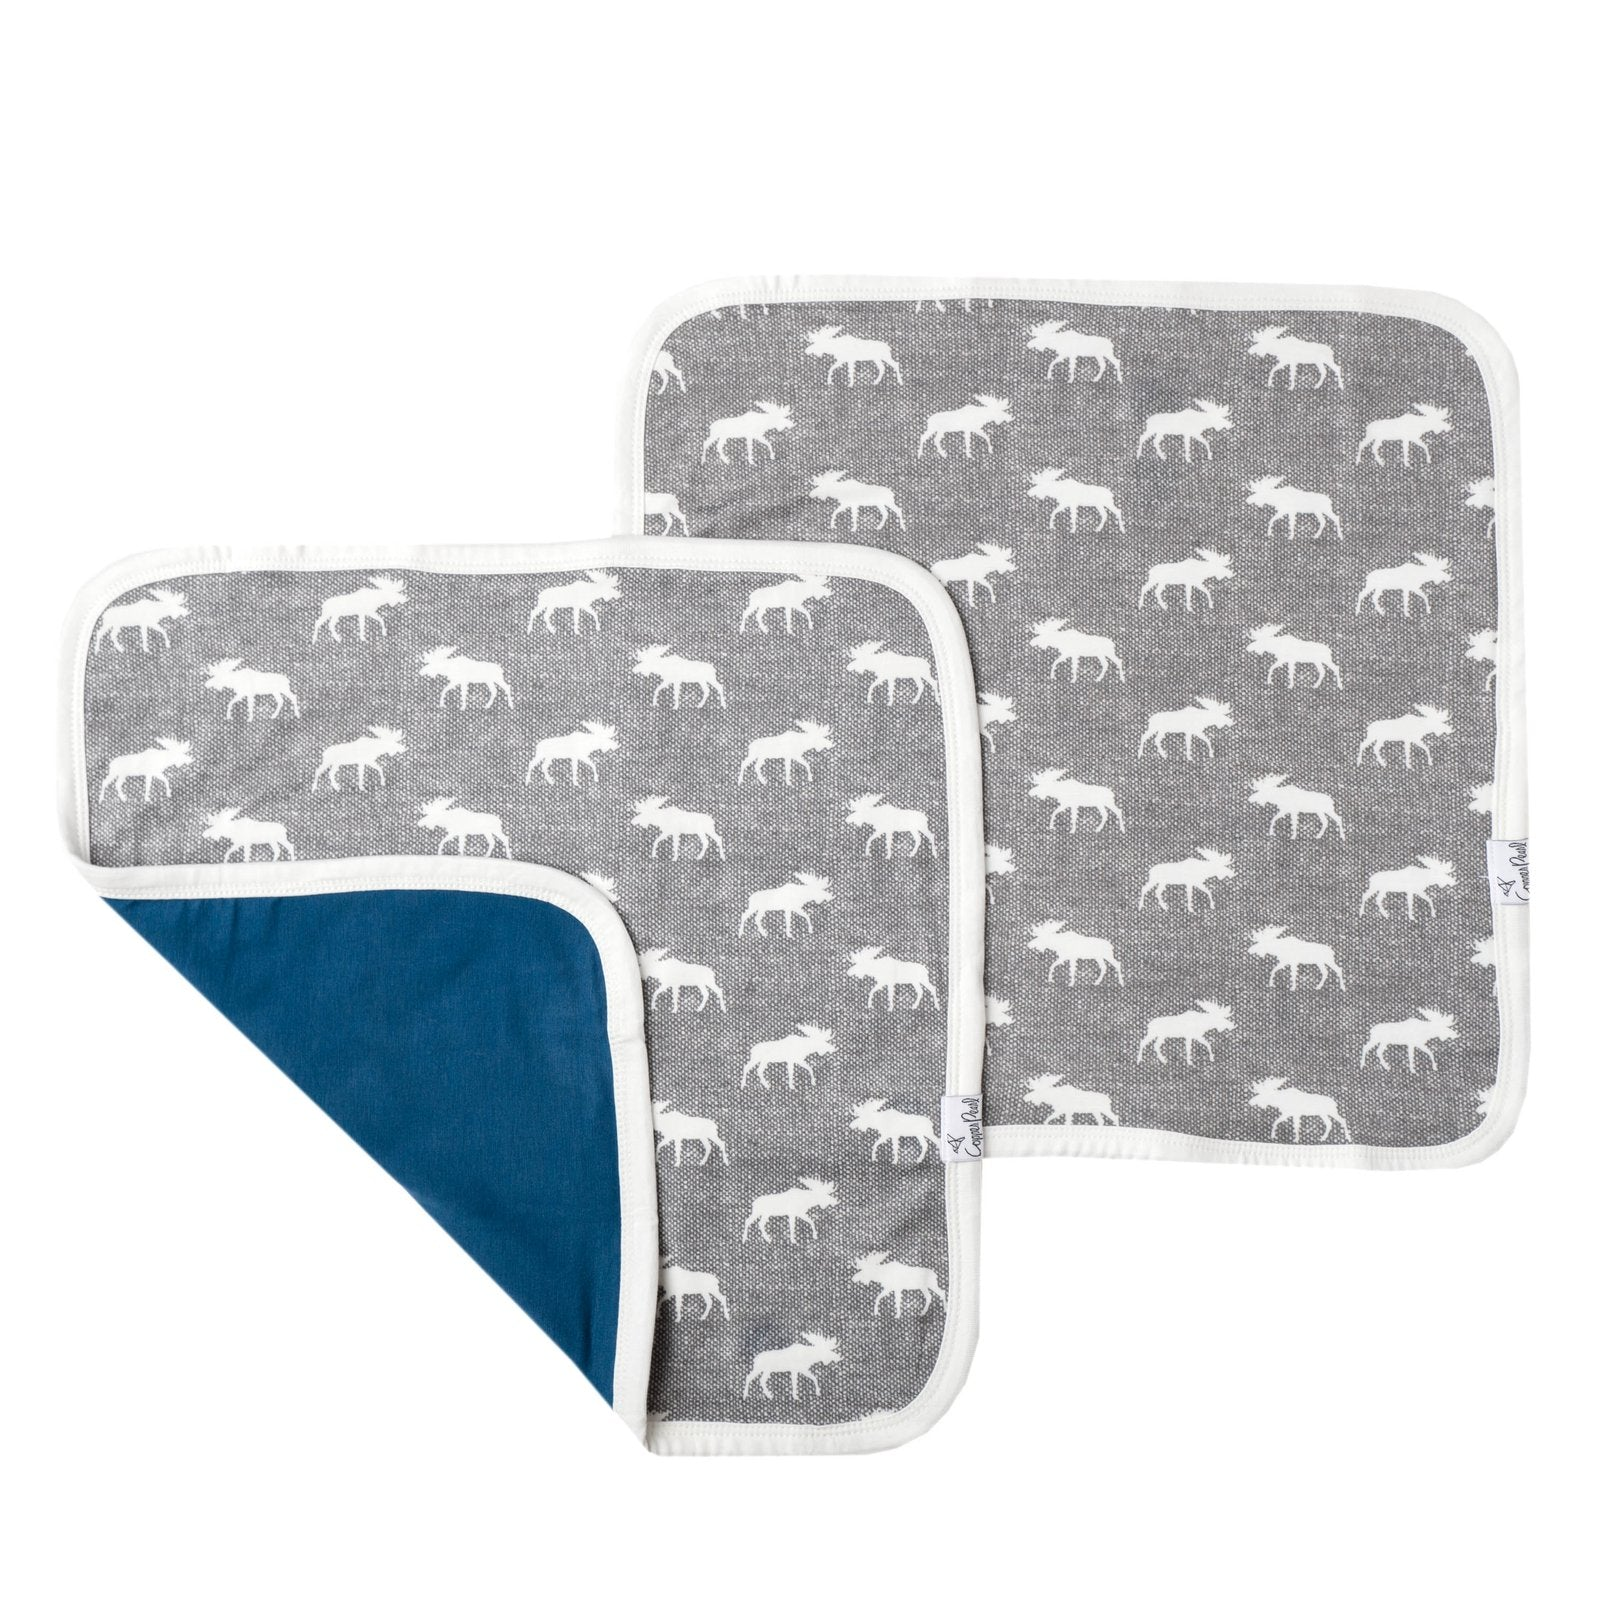 Security Blanket Set (2 Pack) - Scout